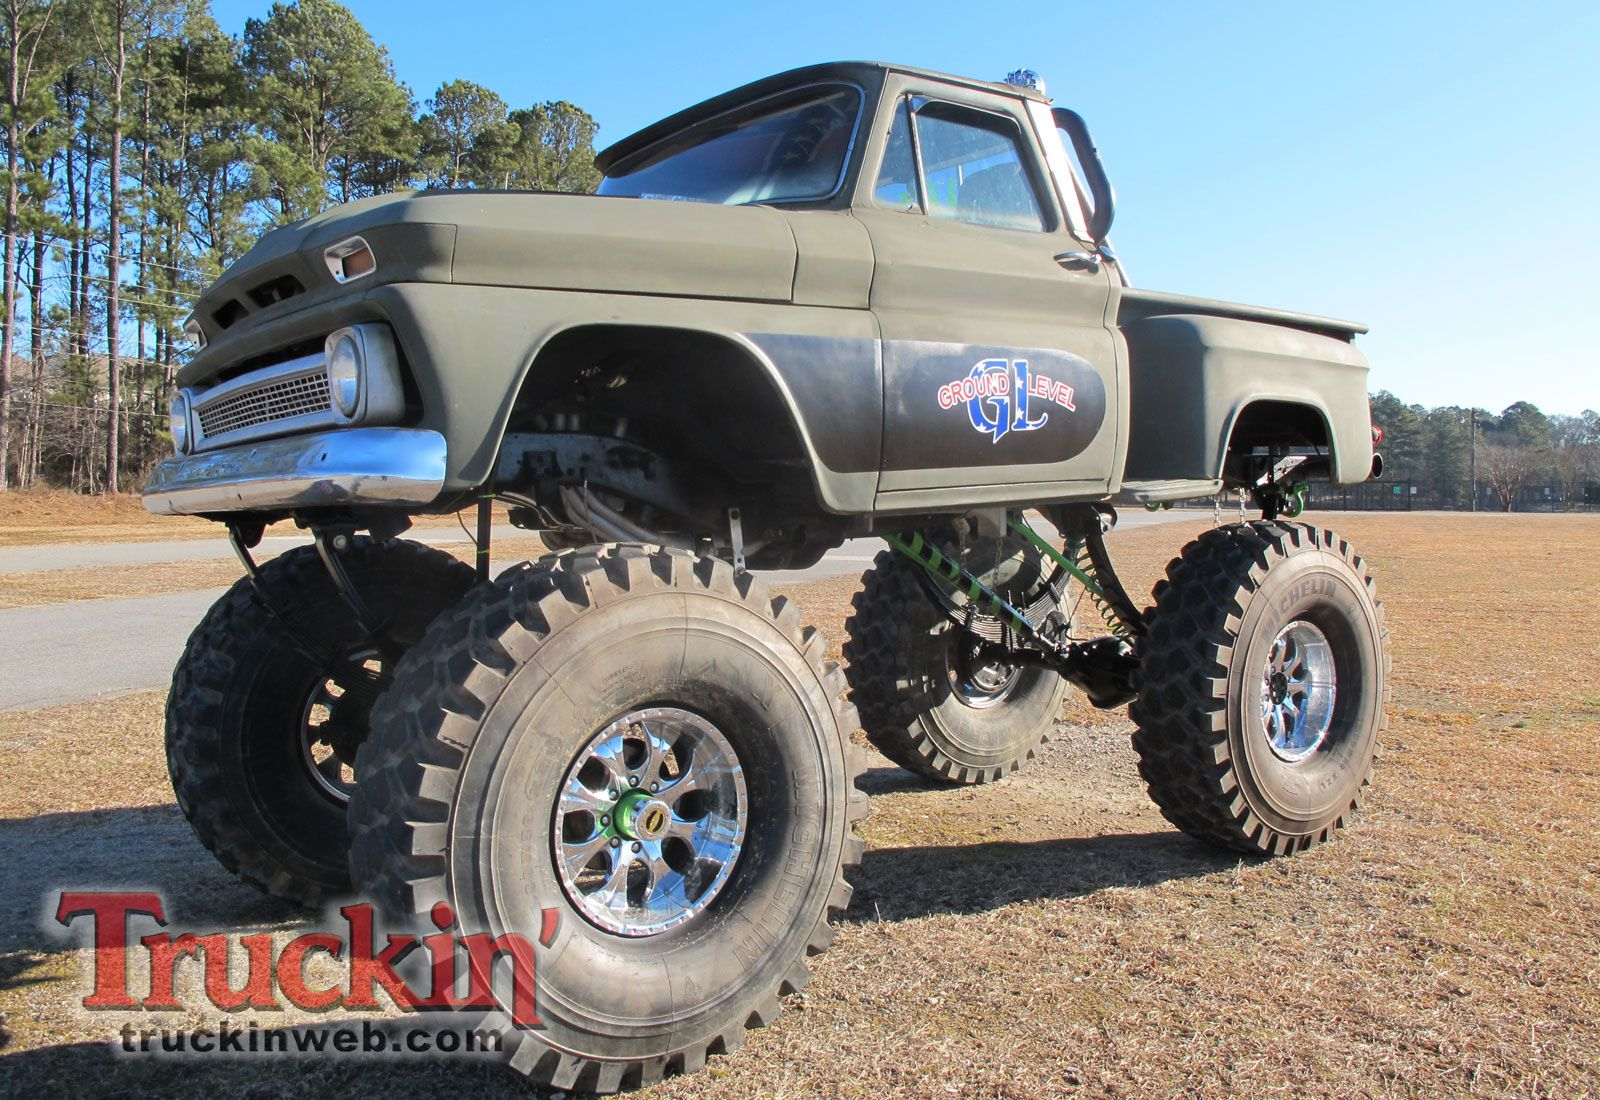 Truck 1963 chevy panel truck for sale : 60-66 Chevy And GMC 4X4's Gone Wild - Page 8 - The 1947 - Present ...